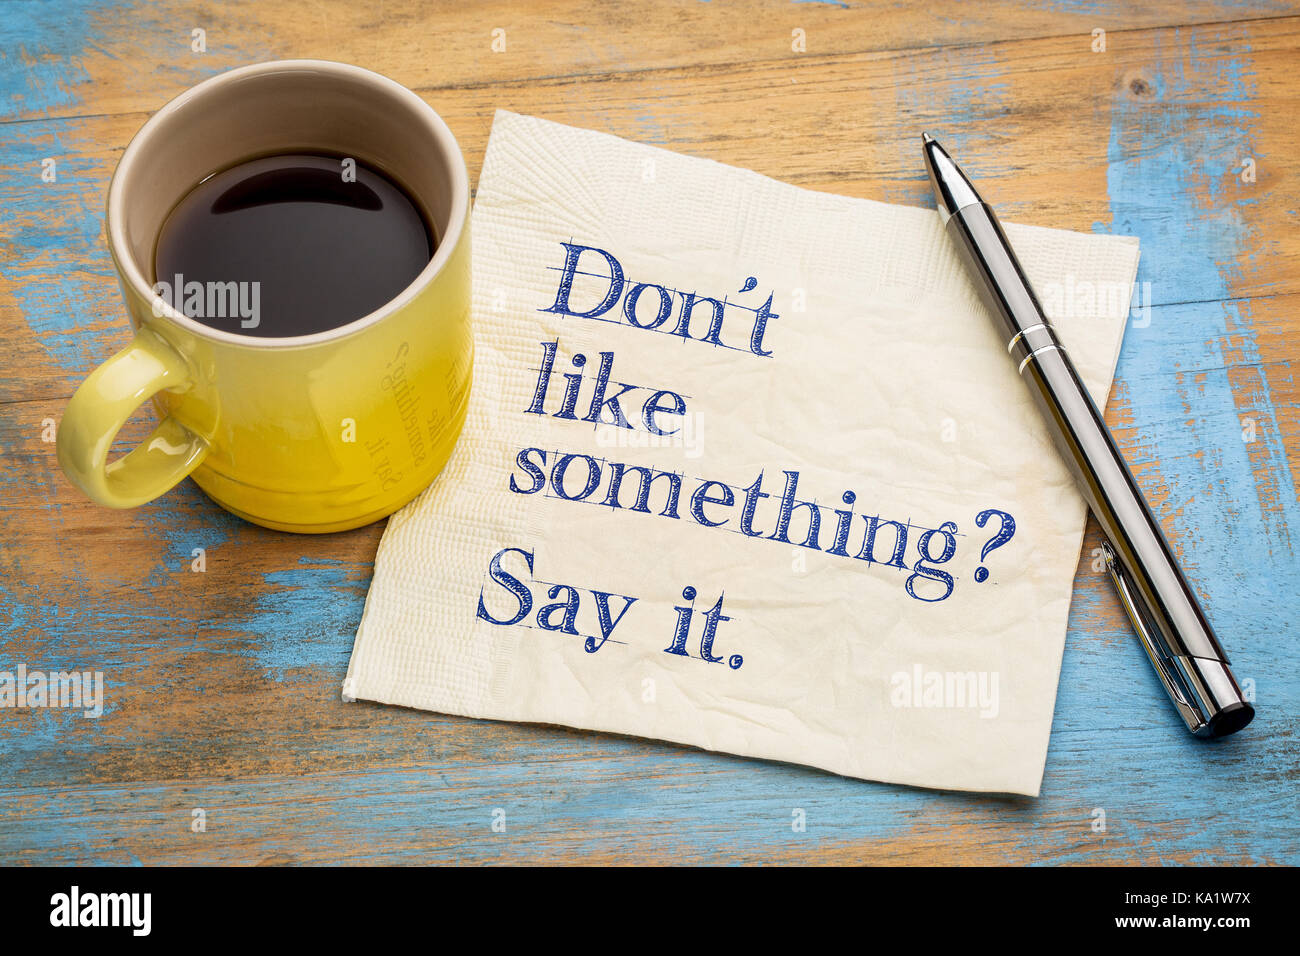 Do not like something? Say it. Handwriting on a napkin with a cup of espresso coffee - Stock Image